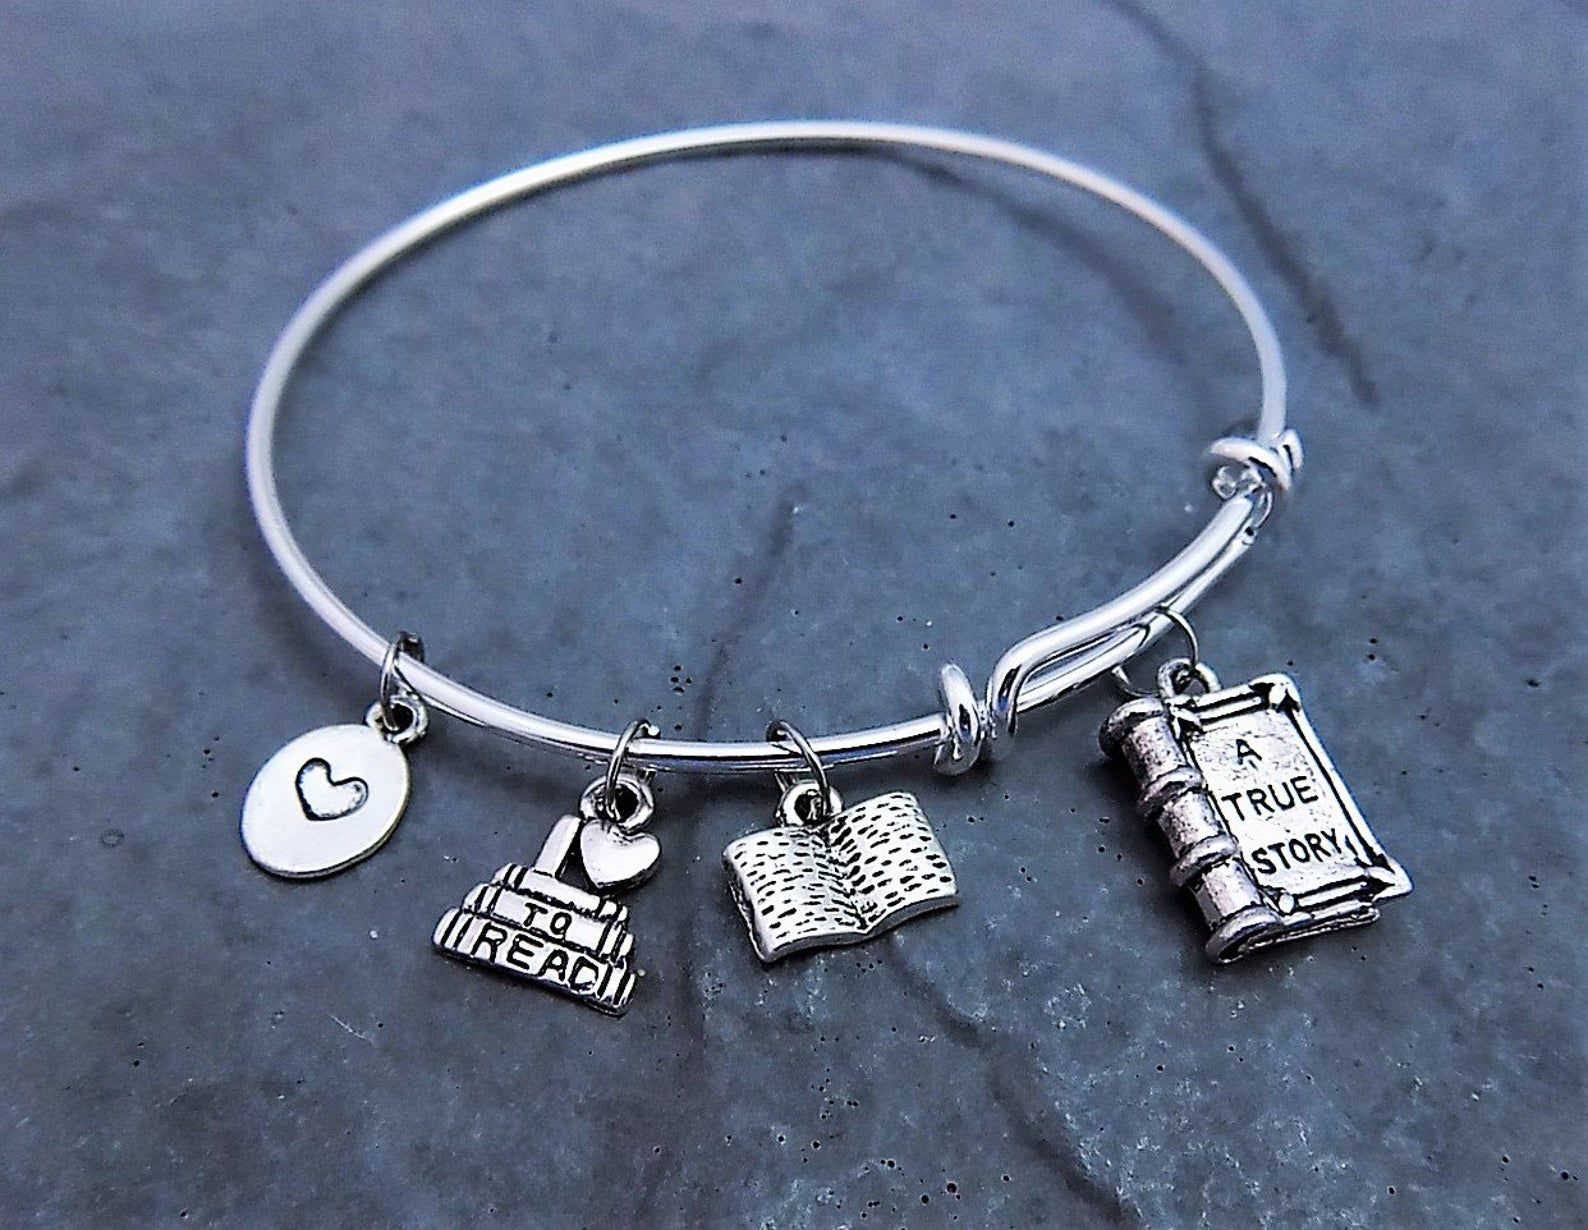 a silver booklover charm bracelet with four charms: a heart, a smalll book stack, en open book, ad a closed book without that reads: a true story